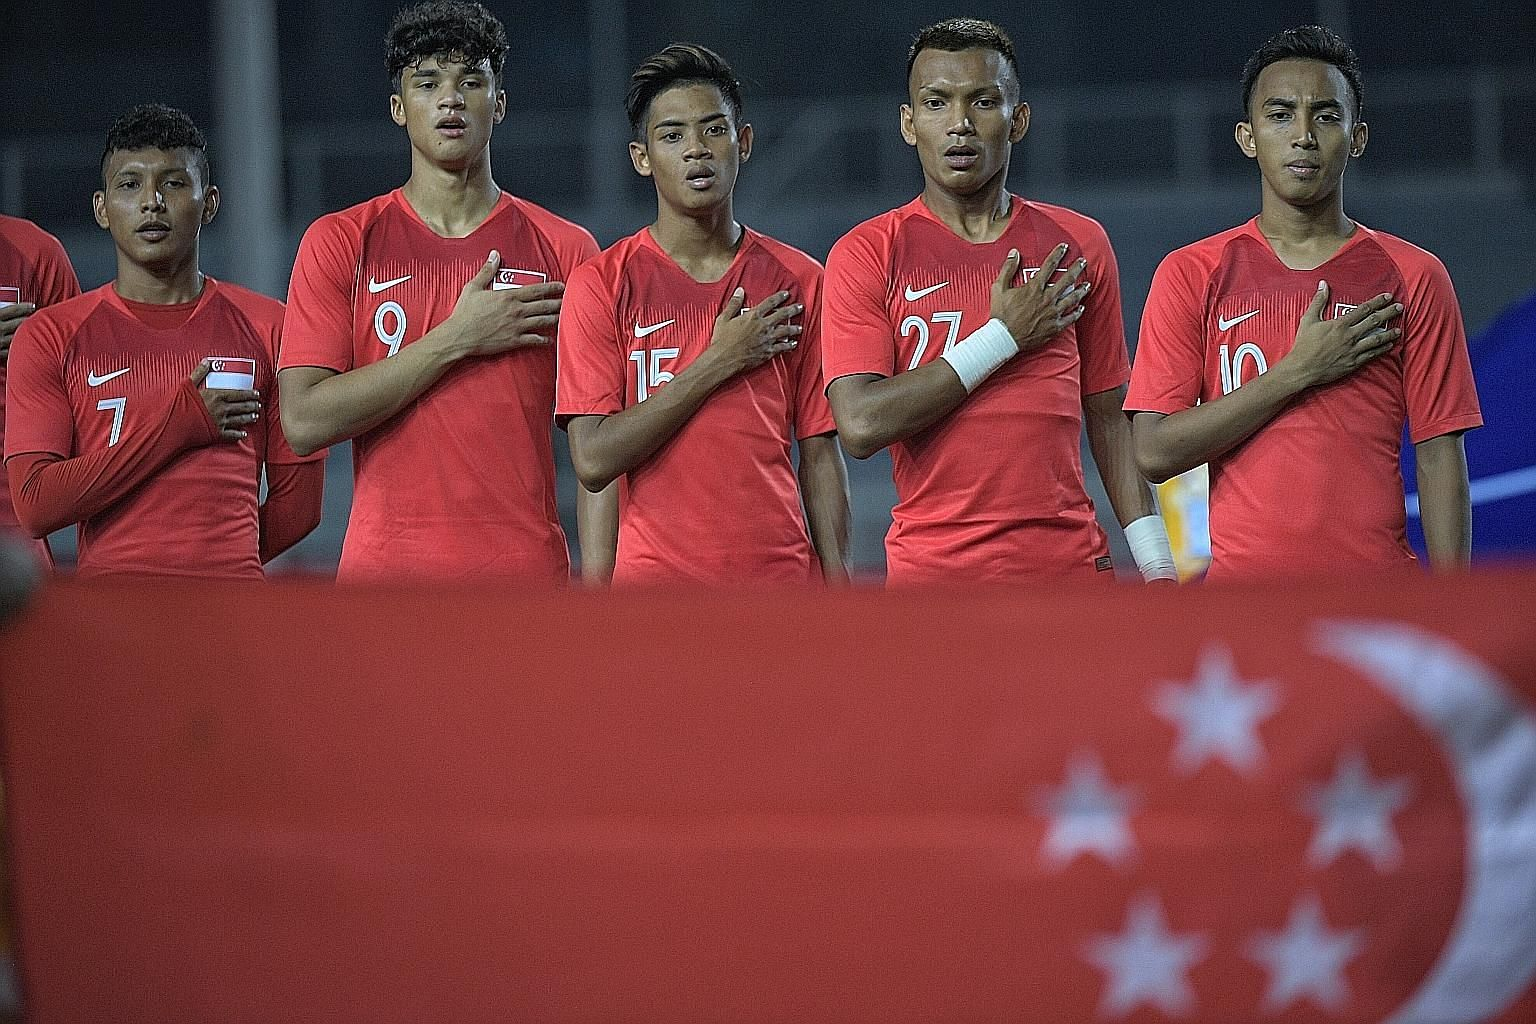 The Young Lions singing the national anthem before their SEA Games opener against Laos in Manila last month. Nearly half the squad broke curfew before the event ended. ST PHOTO: MARK CHEONG